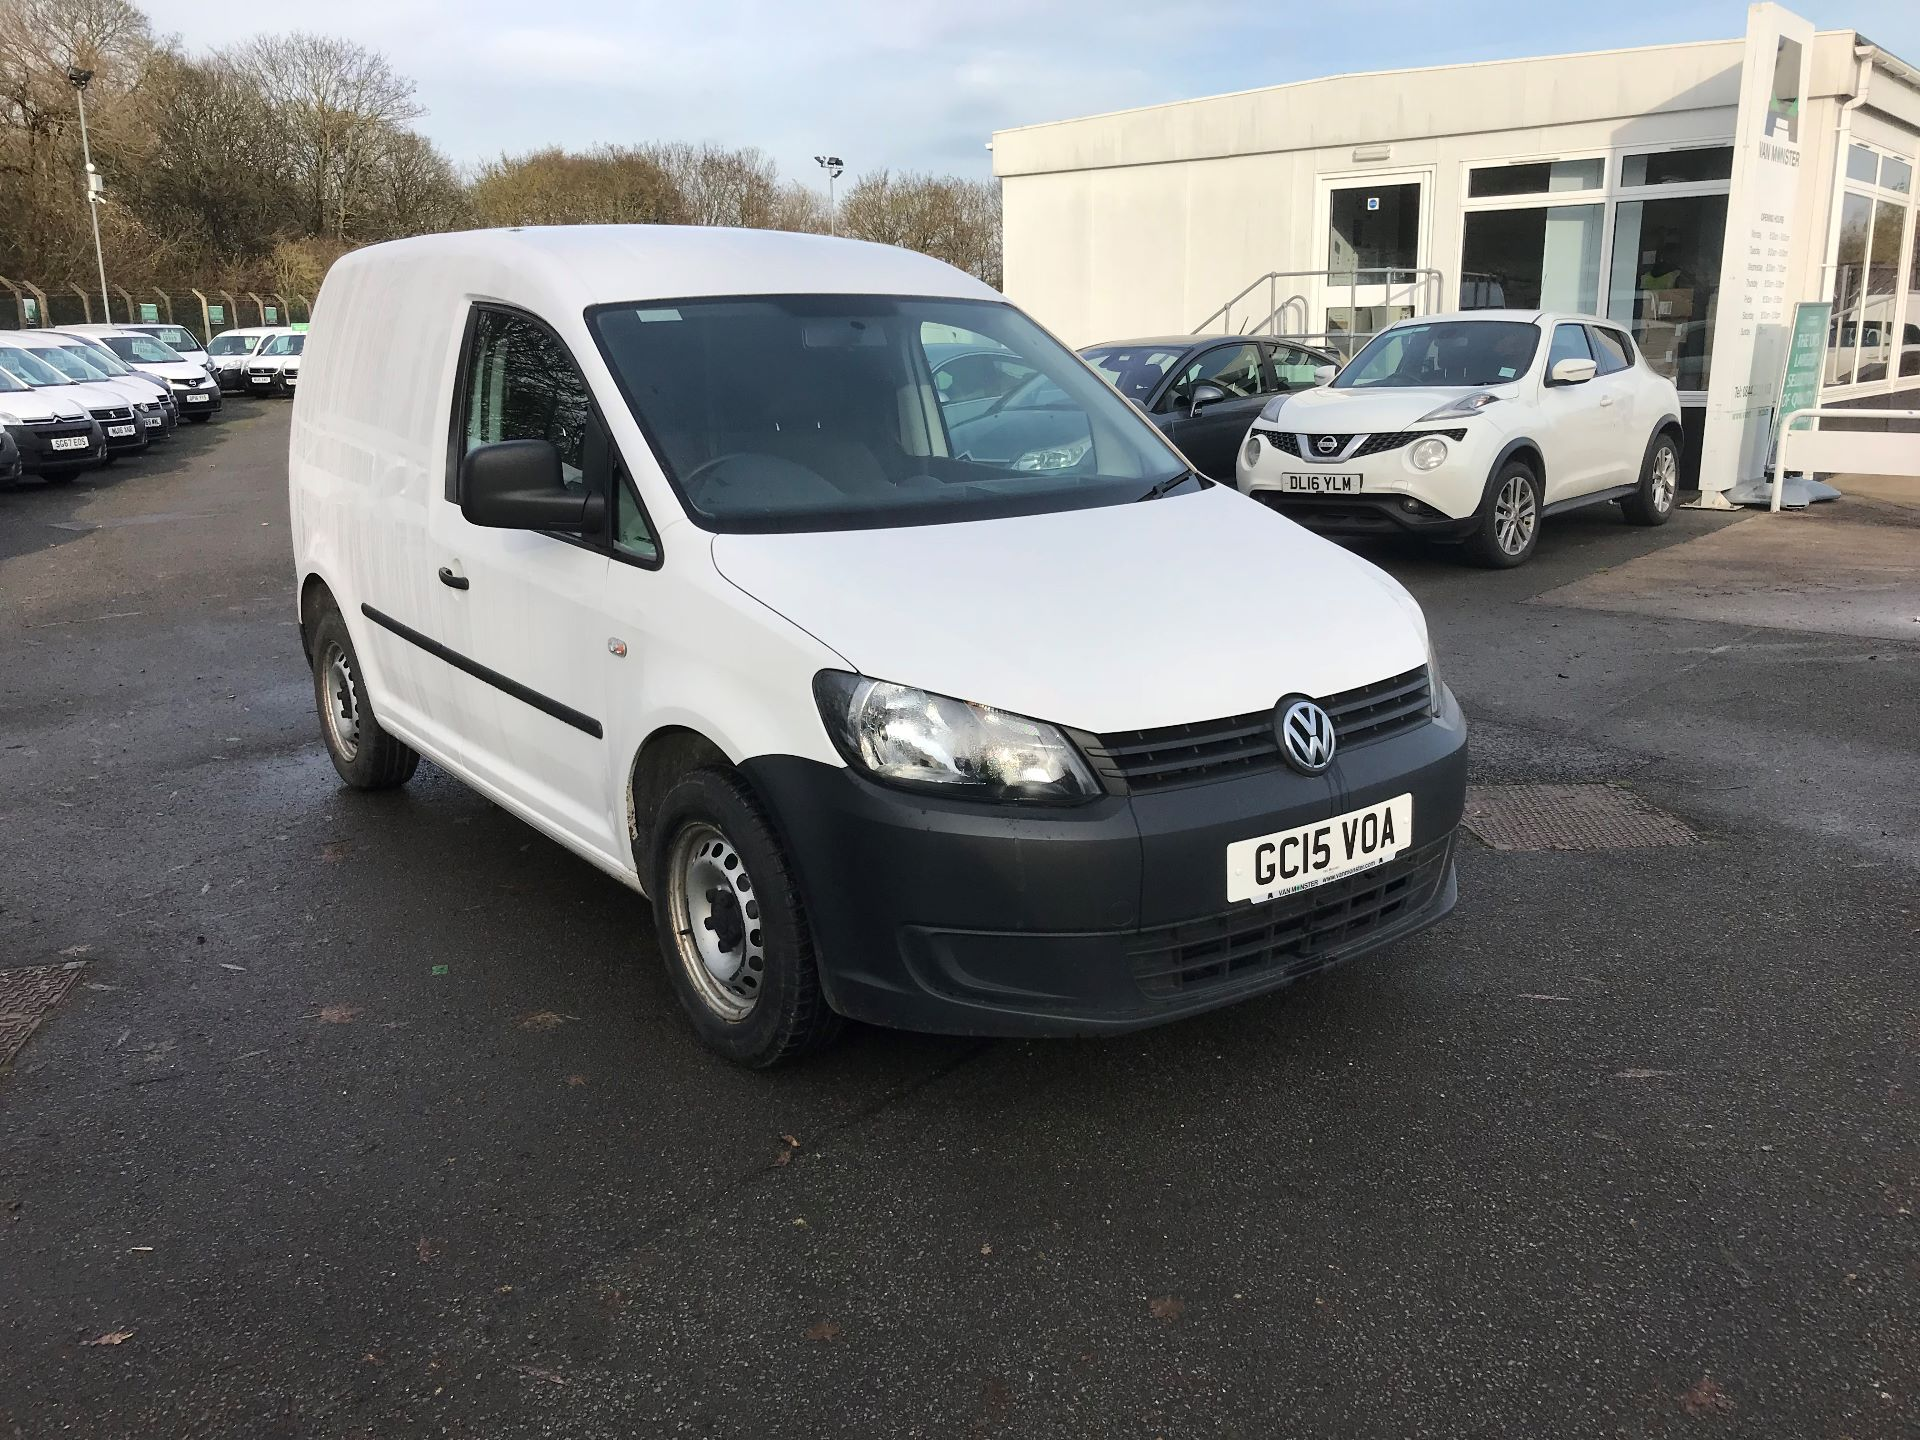 2015 Volkswagen Caddy  1.6 75PS STARTLINE EURO 5 (GC15VOA) Thumbnail 1